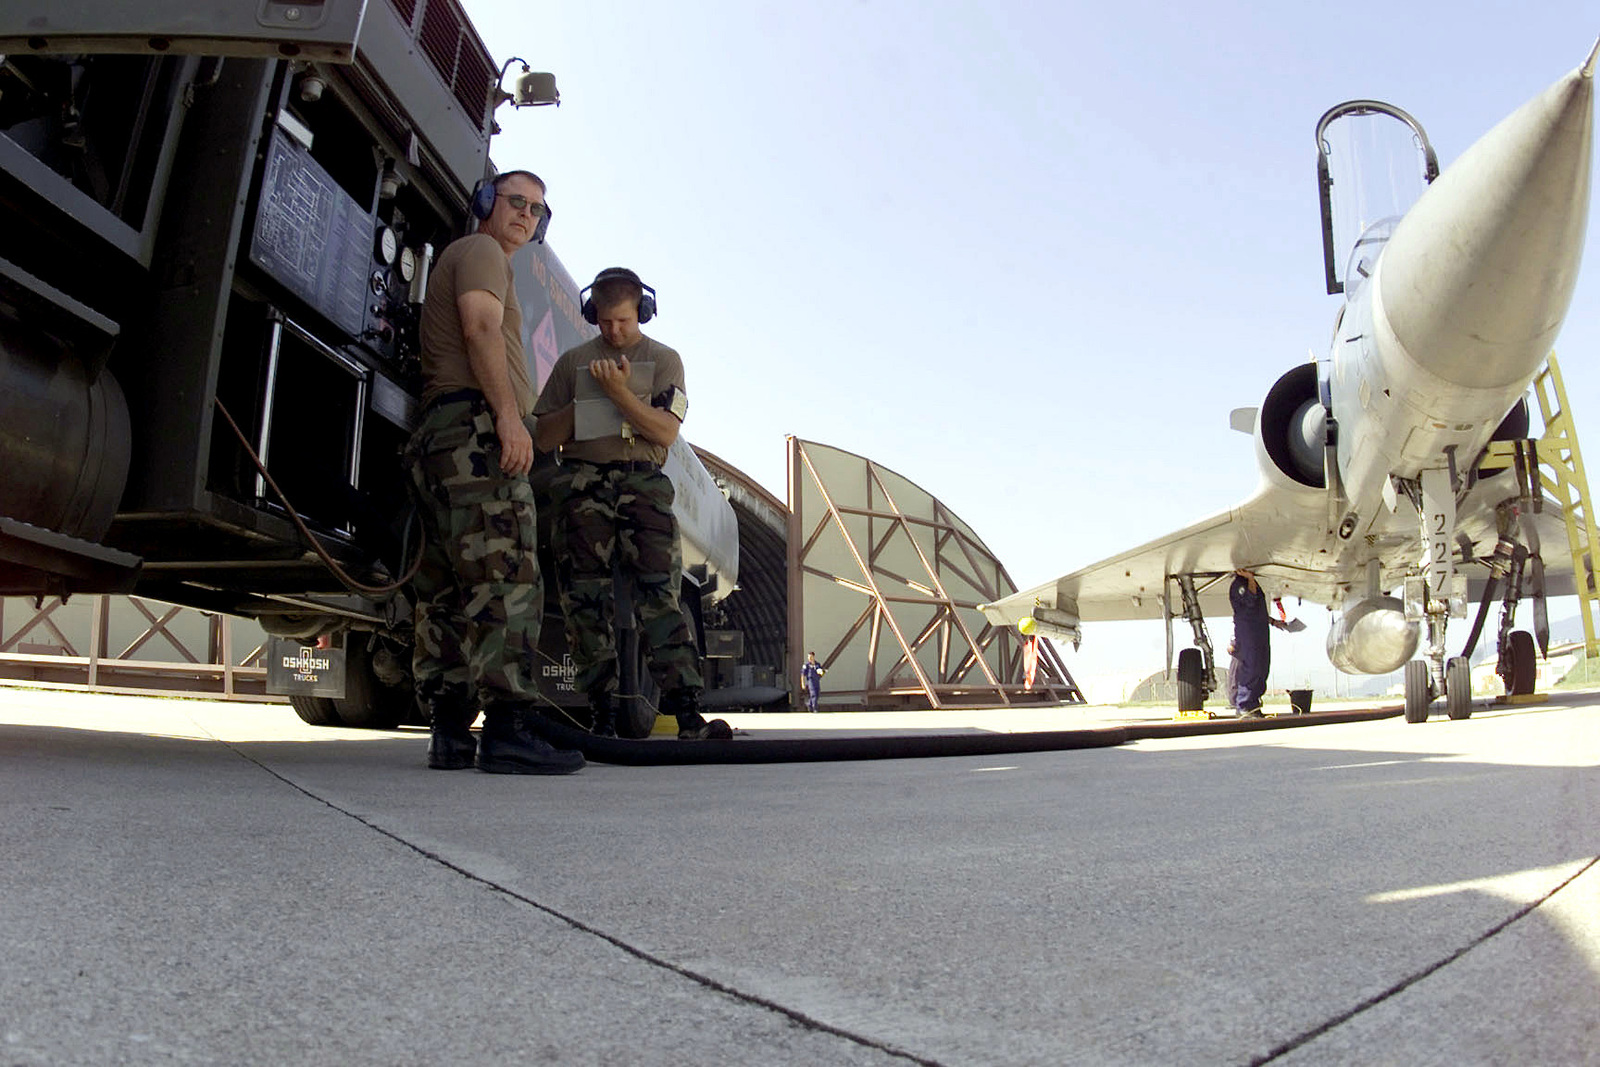 Closest to camera, from left to right, SENIOR AIRMAN William Watros, a Fuels journeyman and Technical Sergeant Cal Garlock of the 124th Logistics Squadron, Air National Guard from Idaho, oversee the re-fueling operation of a Hellenic Mirage 2000. The Hellenic (Greek) unit is at Aviano Air Base, to train with the 510th Fighter Squadron. The Mirages provide valuable dissimilar training allowing 510th Fighter pilots the opportunity to train against other types of aircraft. (Duplicate image, see also DF-SD-01-06171 or search 000816-F-4728F-010)